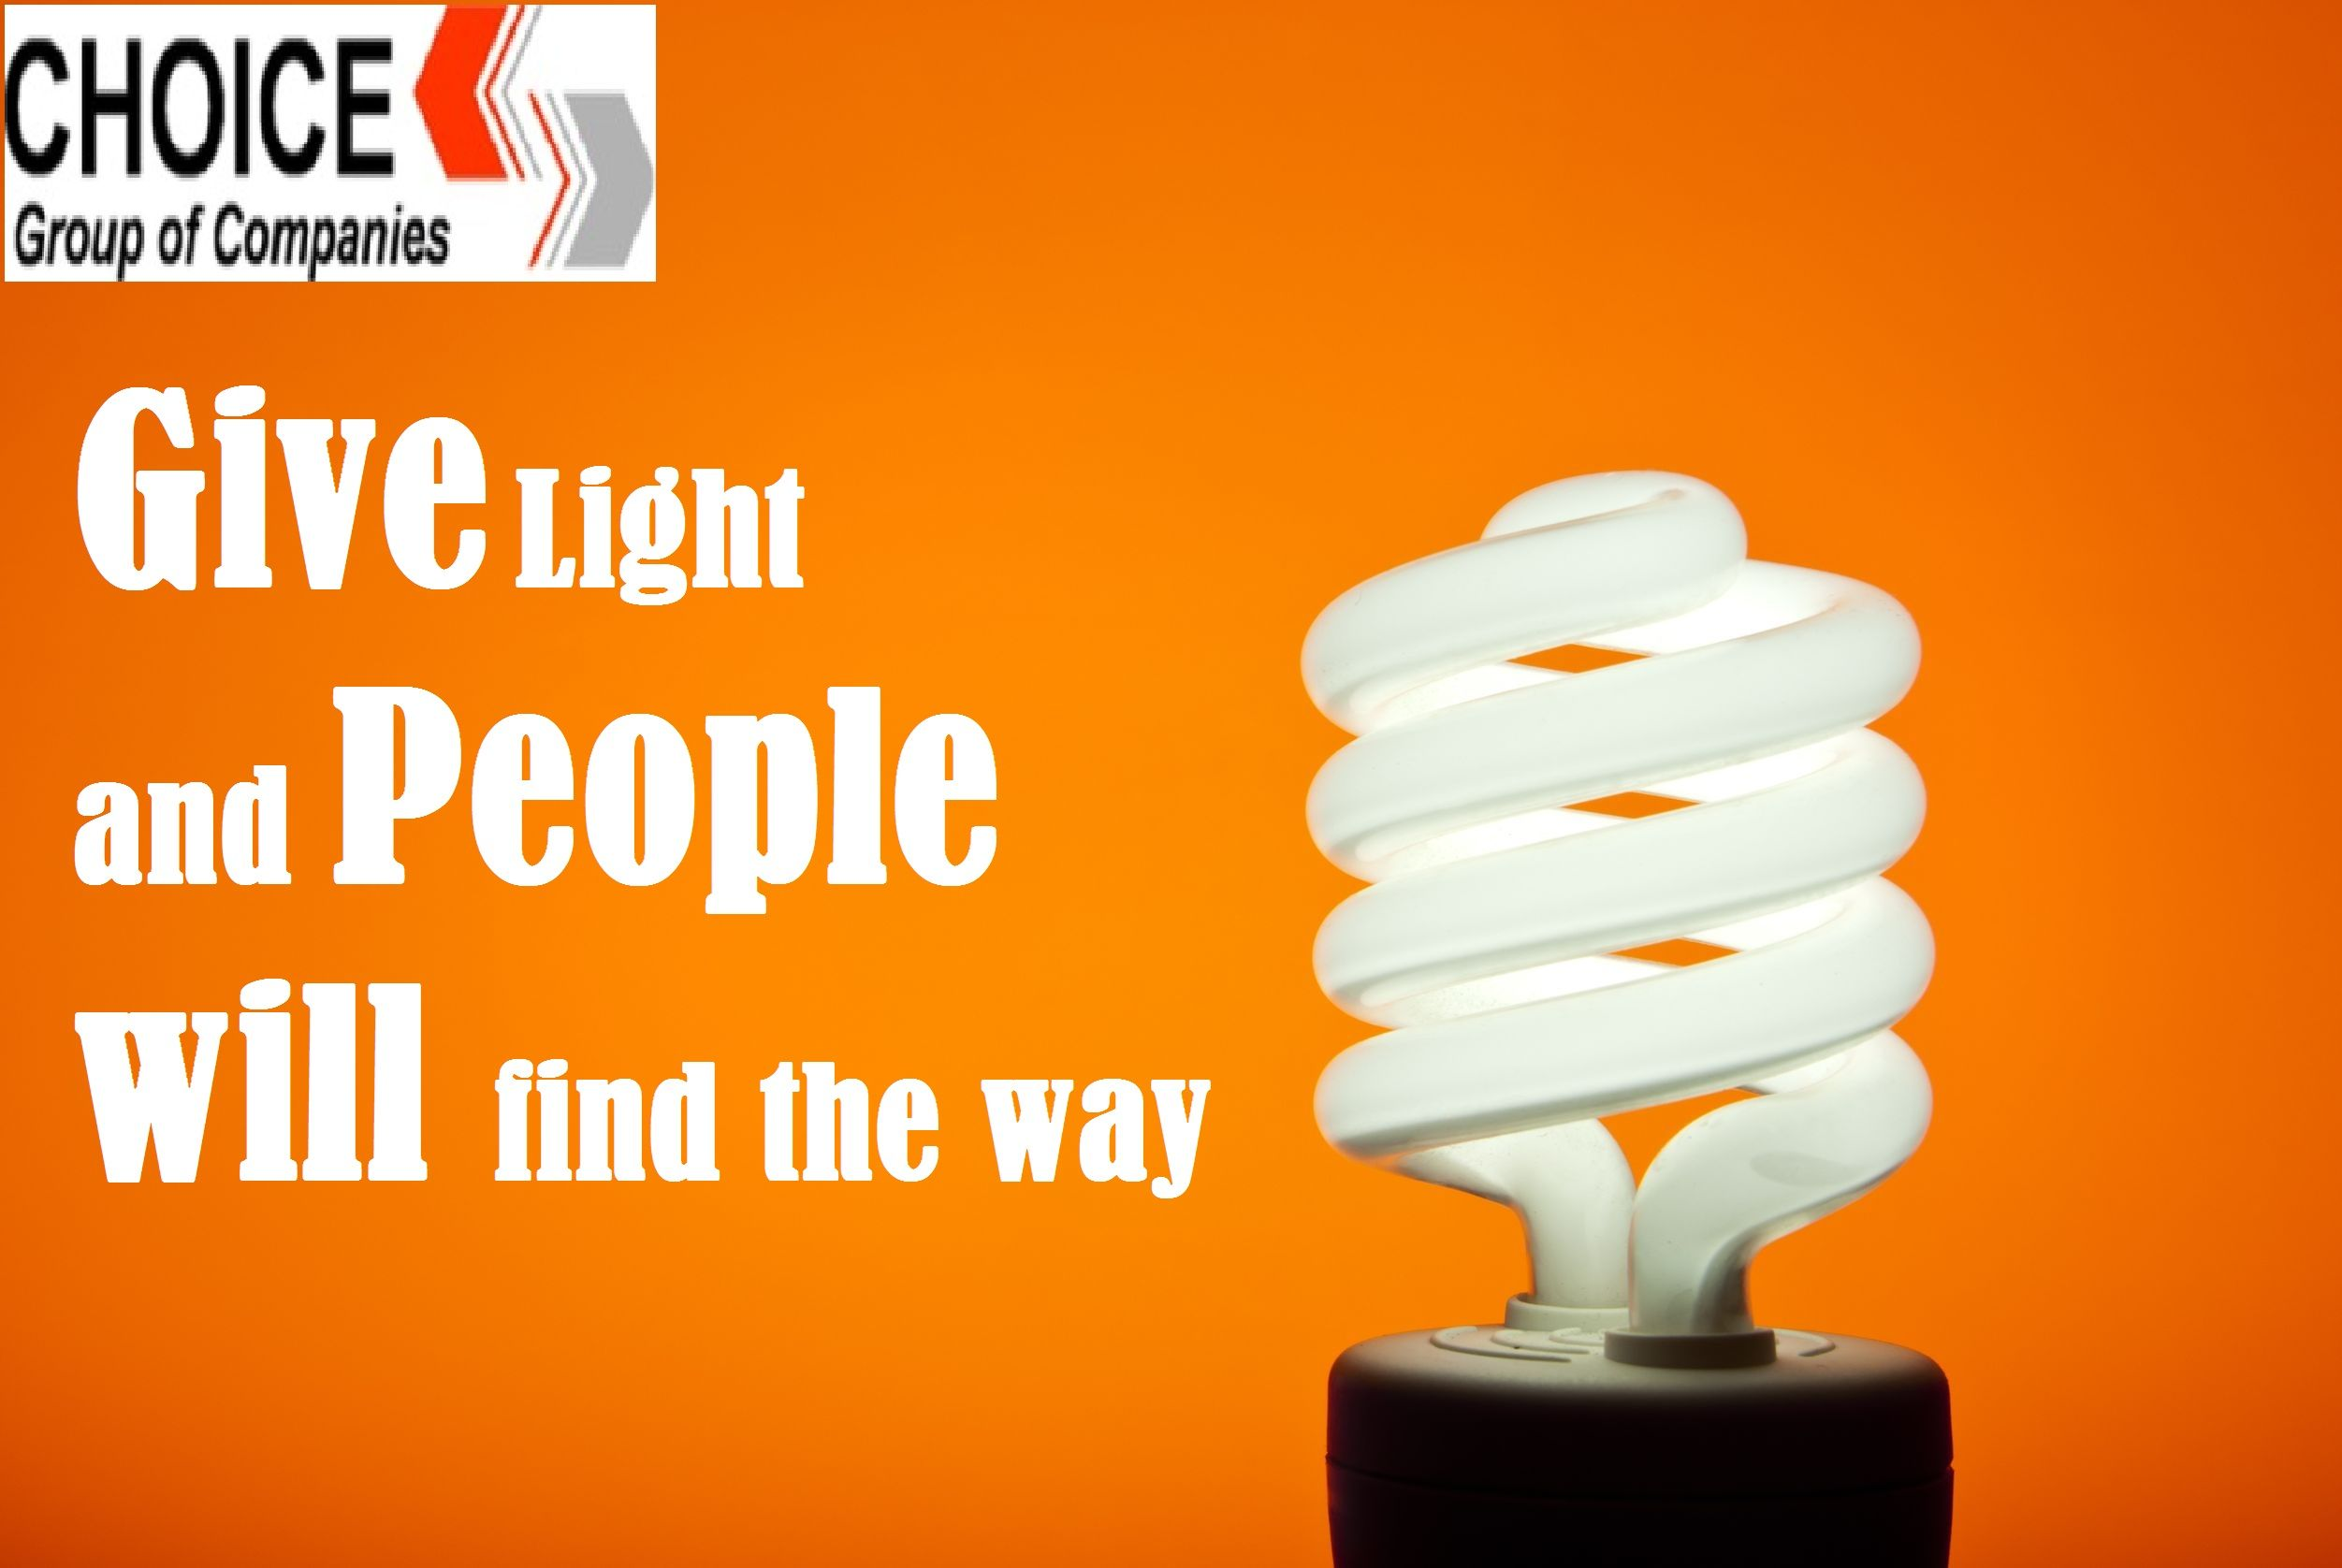 Give Light and people will find the way! Choice chemtech Pvt